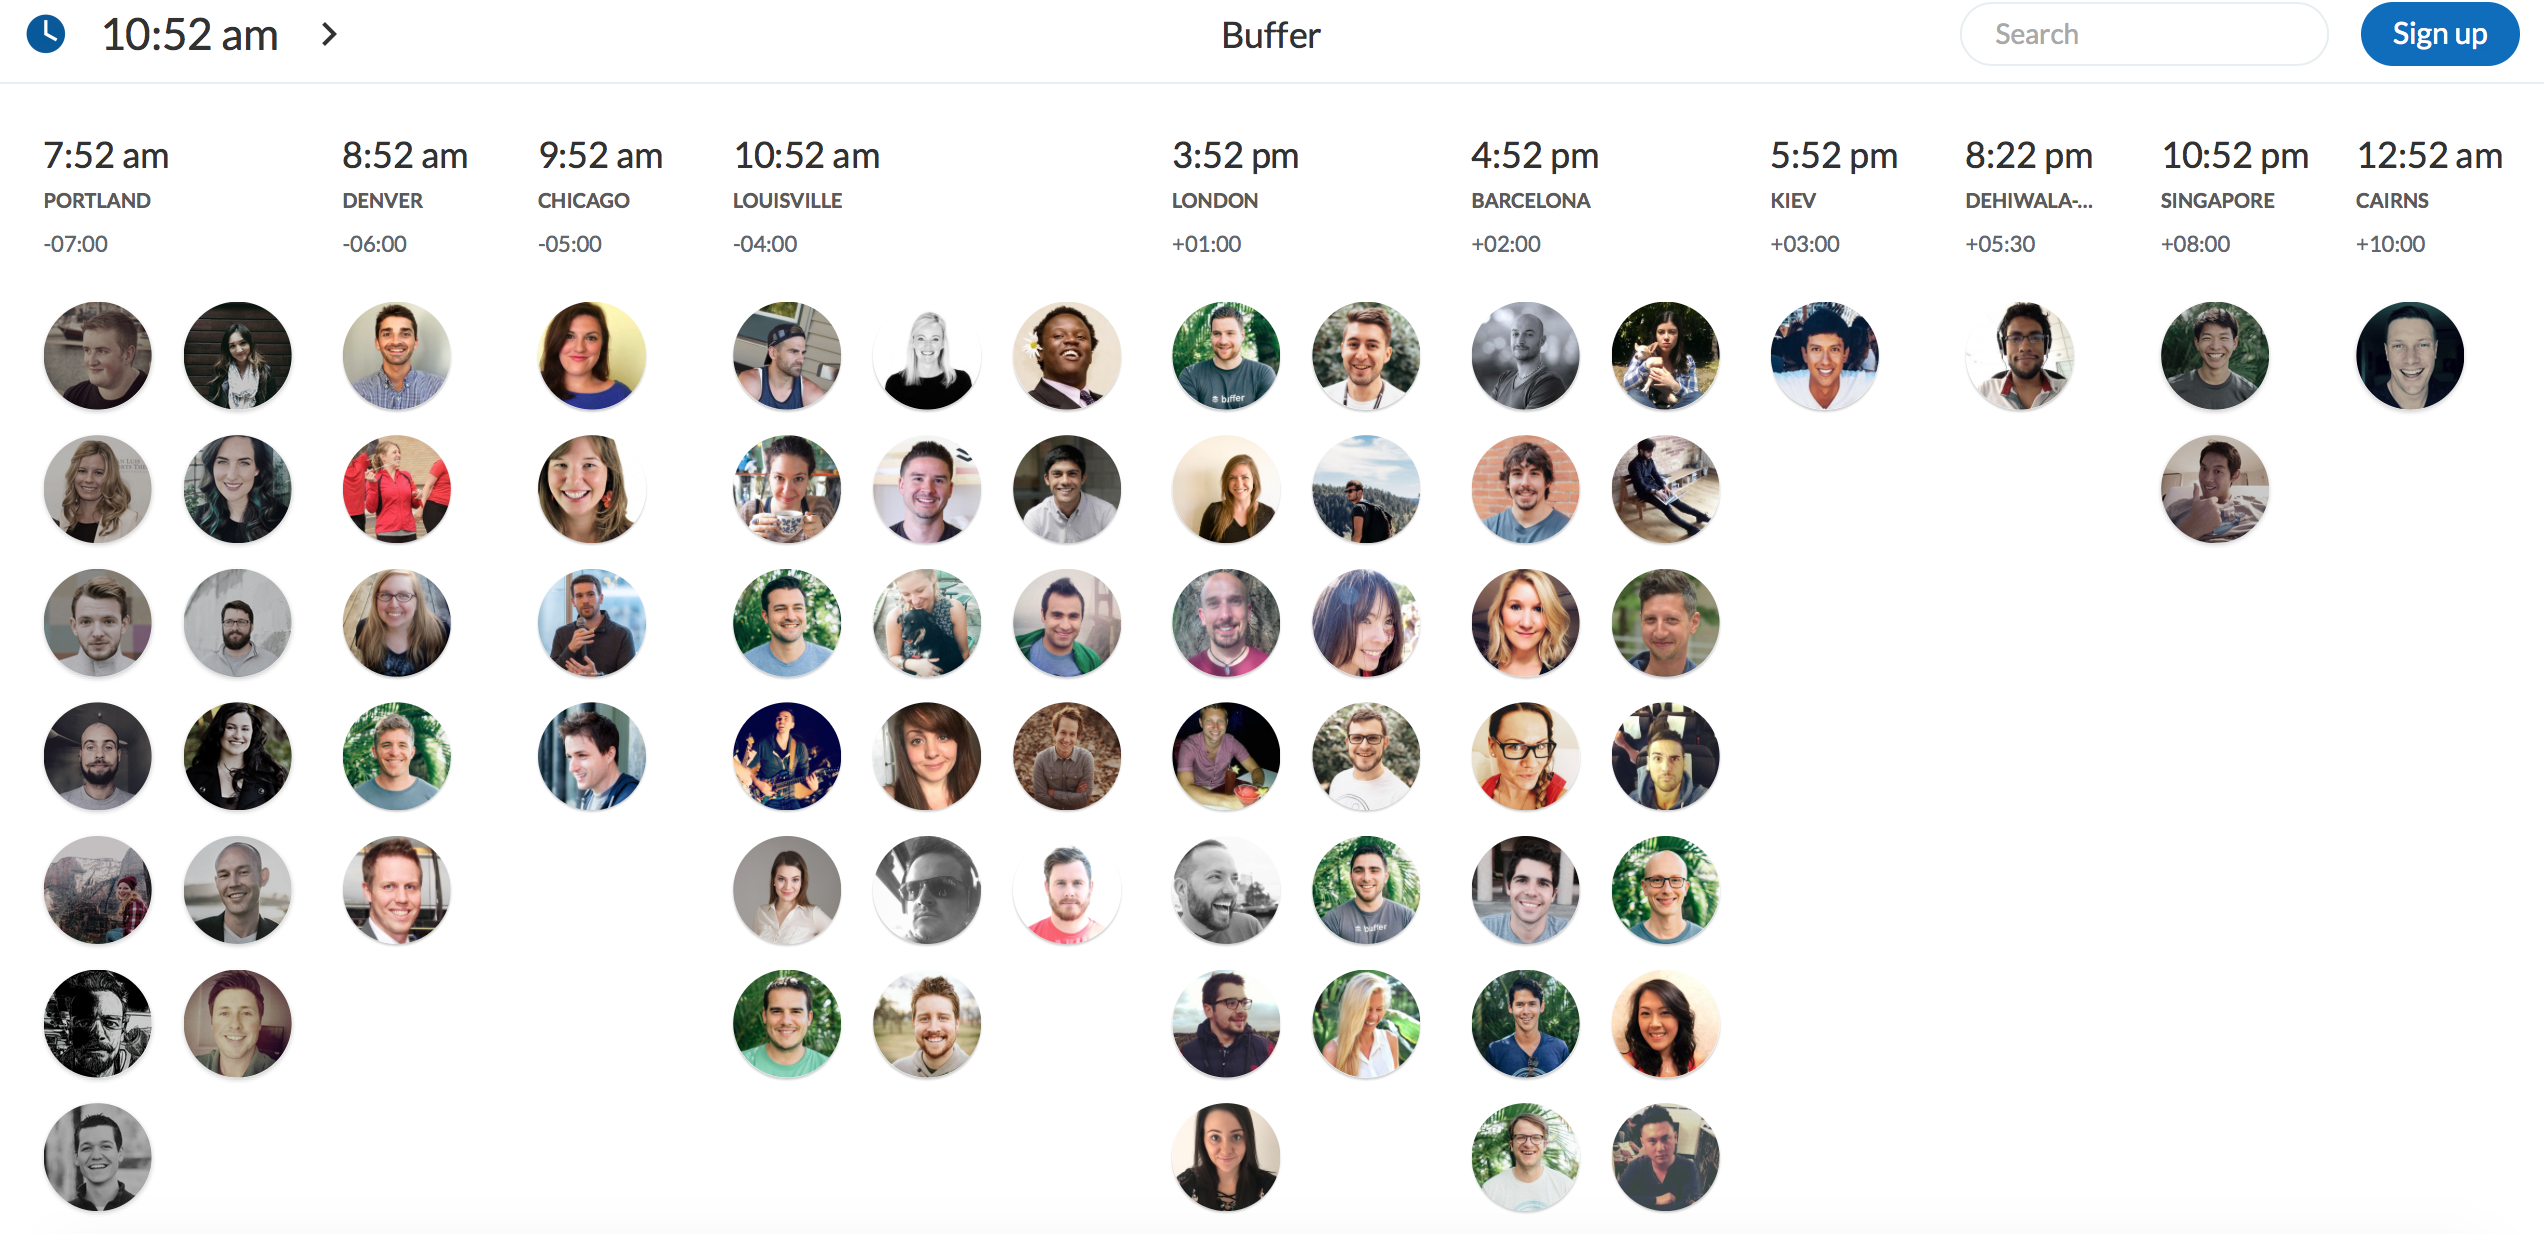 Buffer jobs review: A remote company with unbelievable benefits!